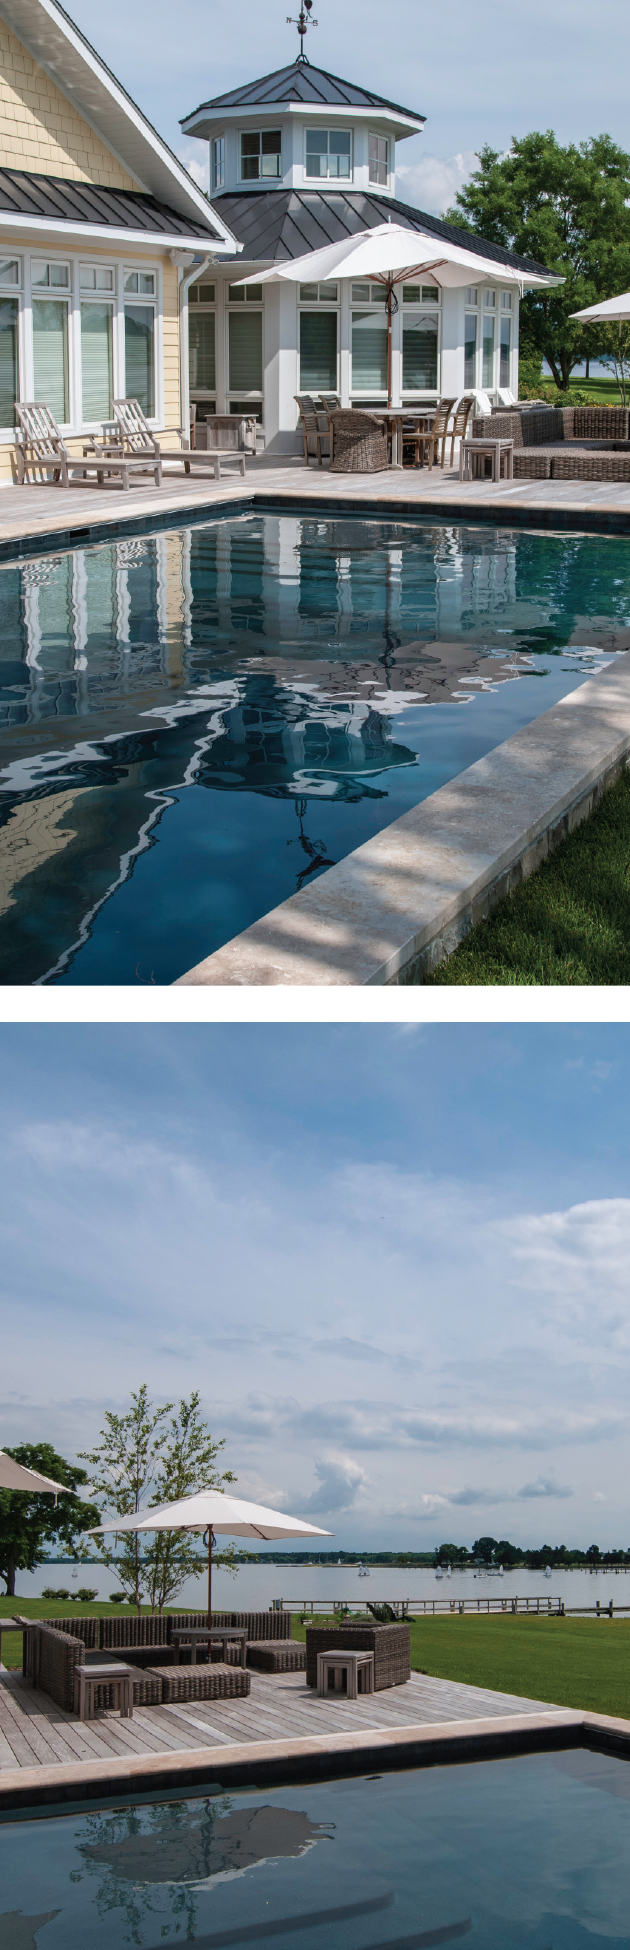 Pool Cues: Showcase Pool Projects with Top-End and Trending ...